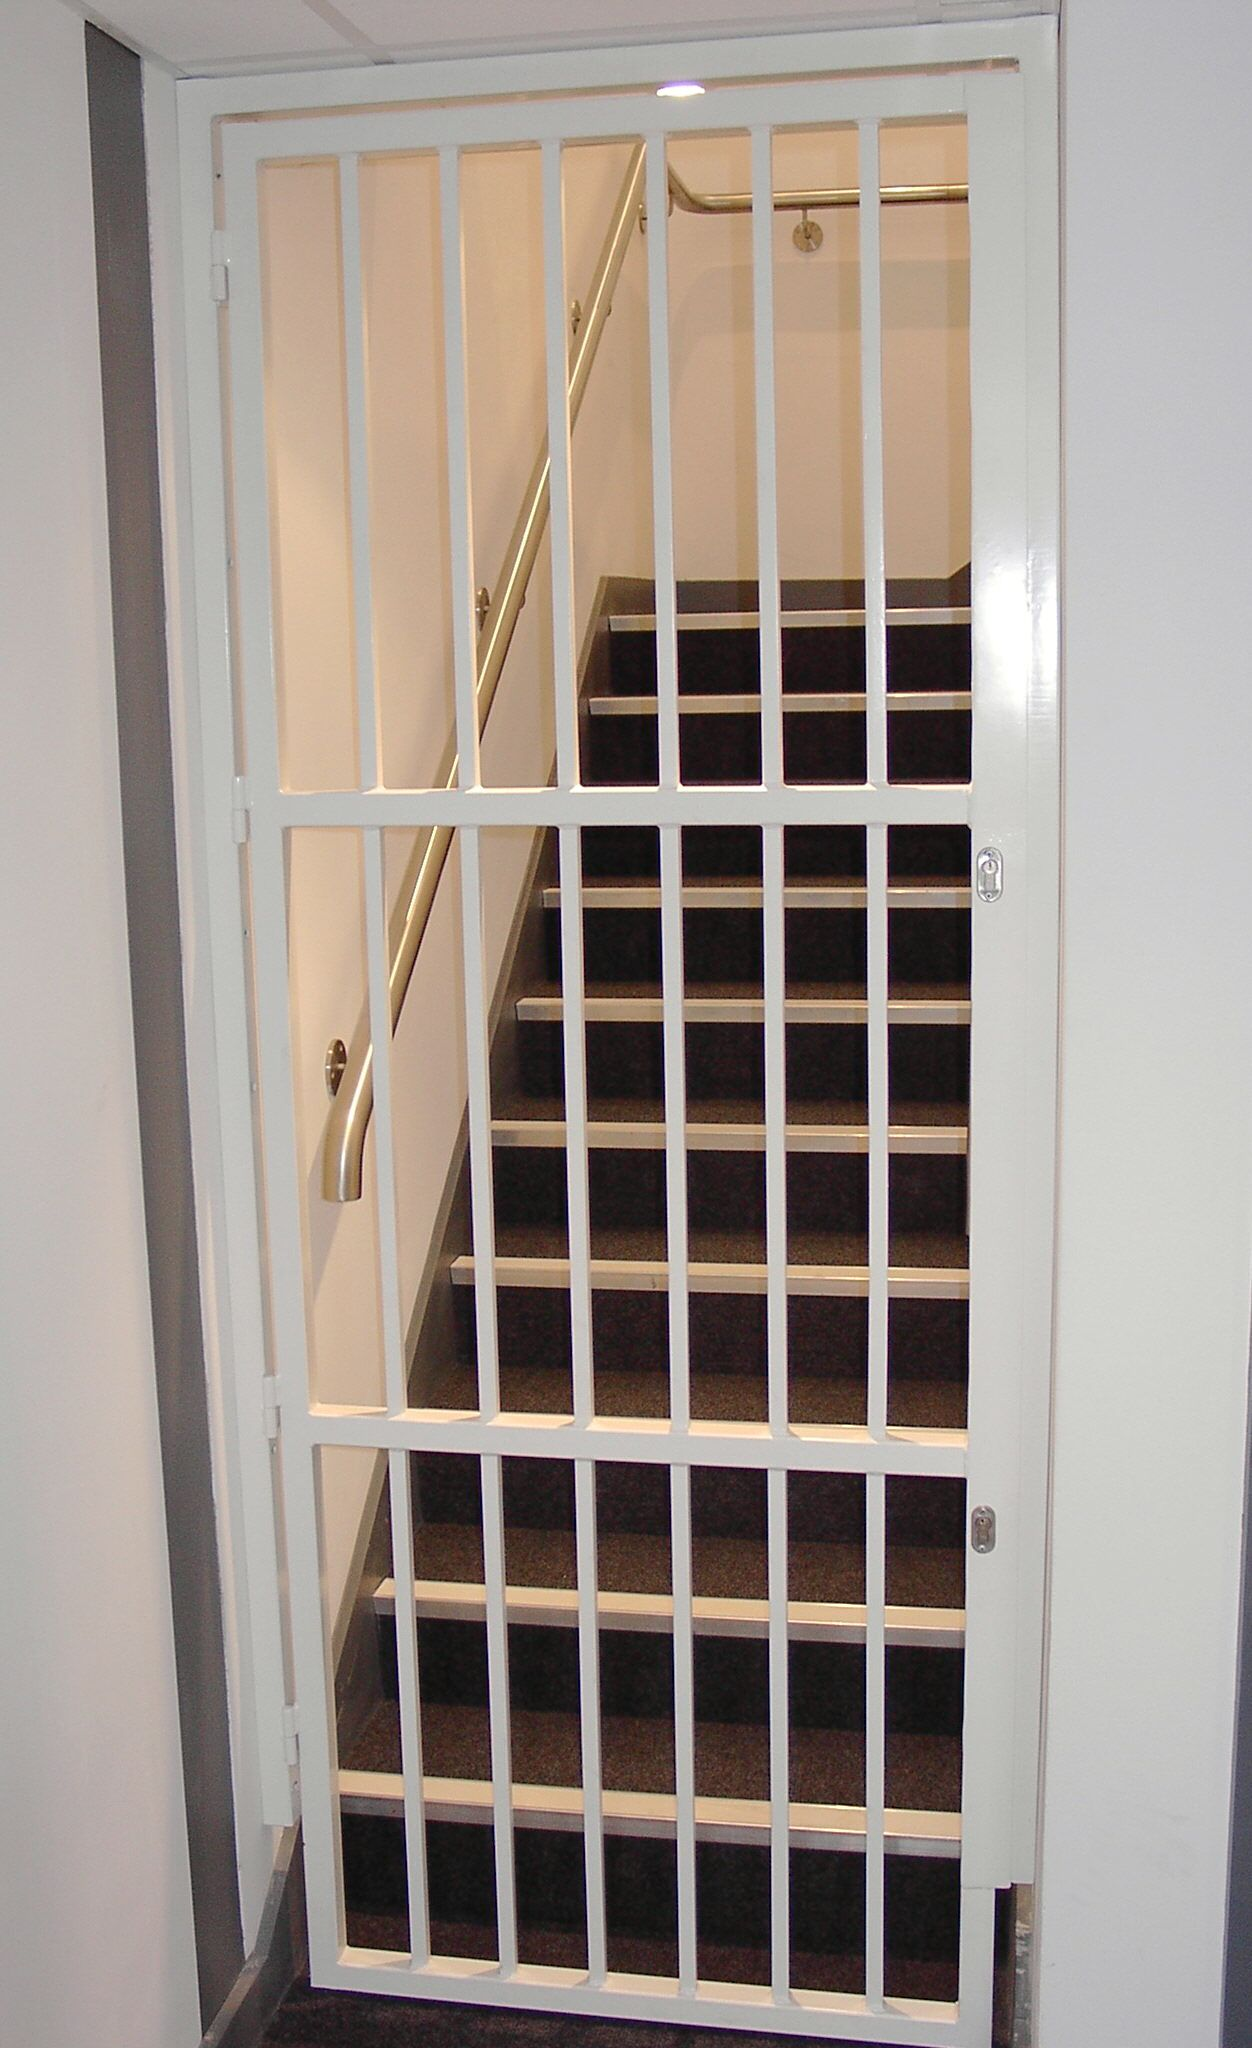 RSG3000 Security Bar Gate Fitted To The Staircase Of A Residential Flat In  Surrey.